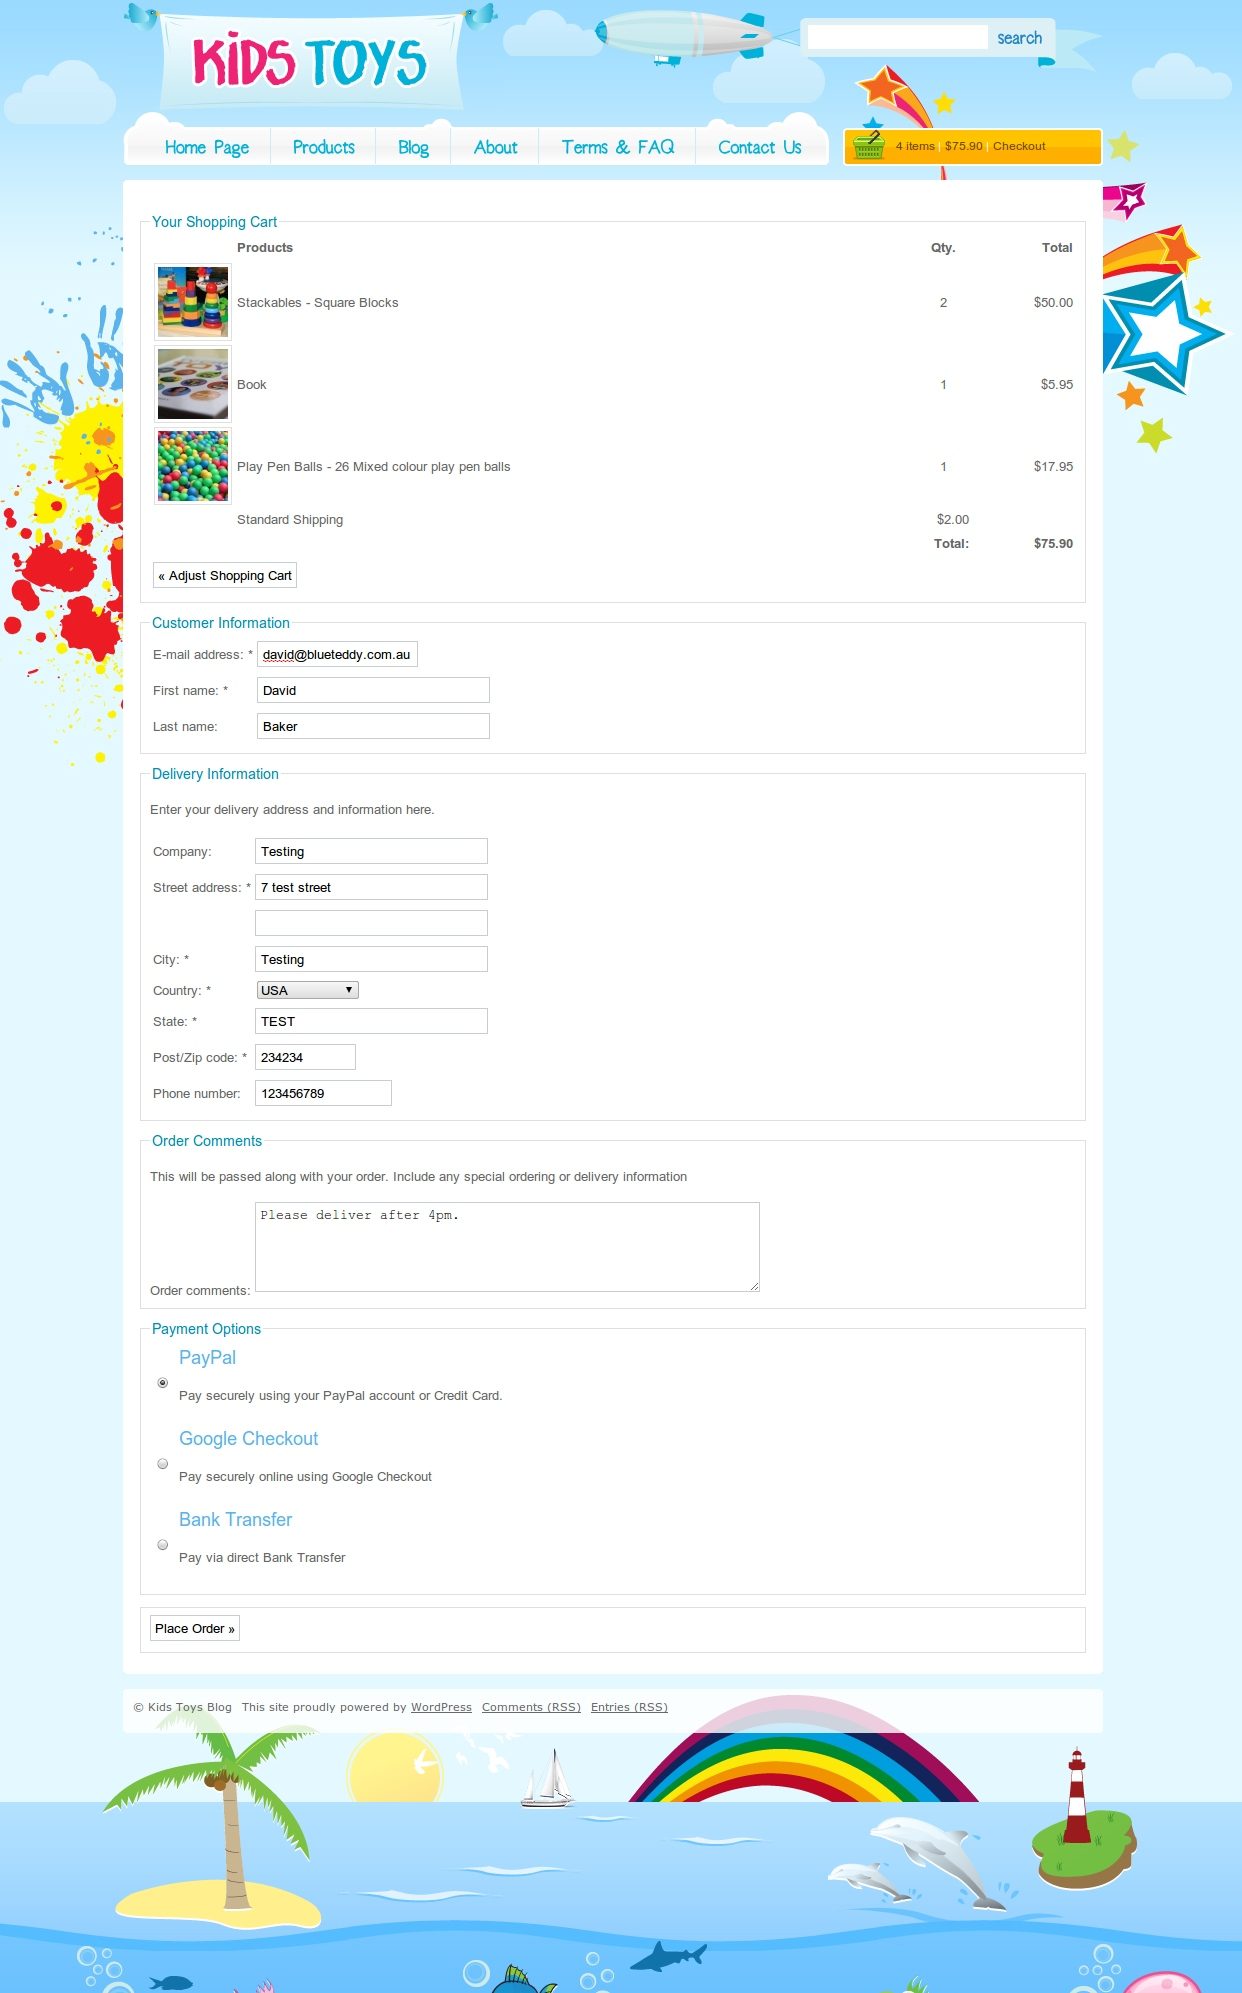 Kids Toys - WordPress Shop Theme - Here is a screenshot of the full checkout page, asking for all the details (including shipping details)